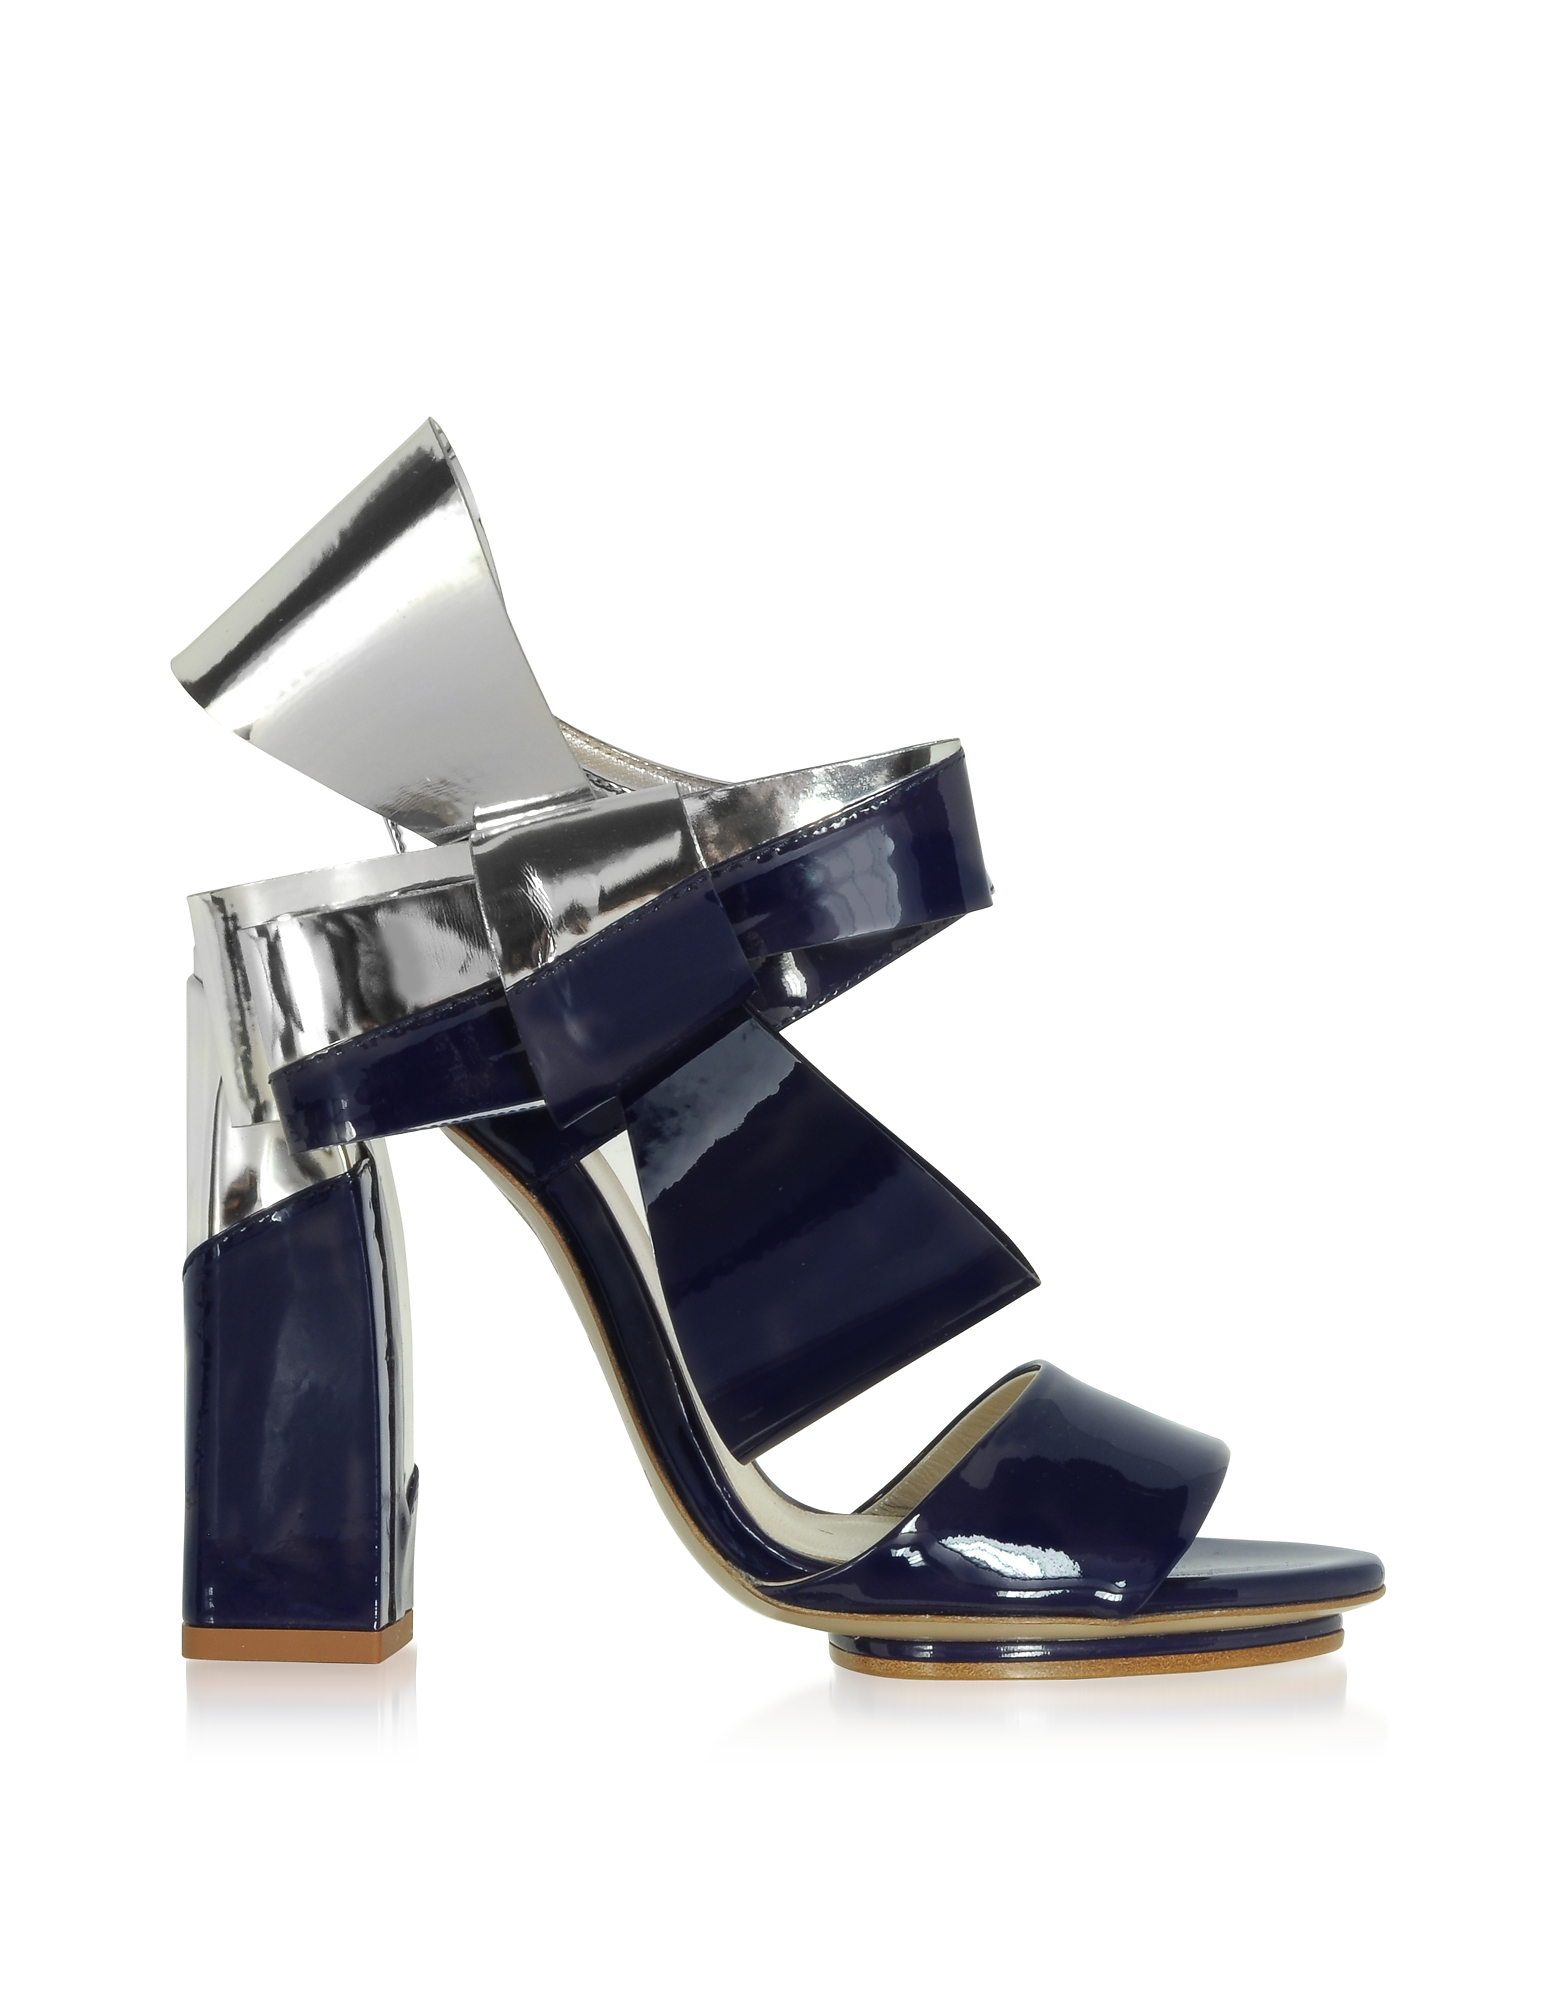 Delpozo Shoes, Silver and Navy Blue Patent Leather Bow Sandals